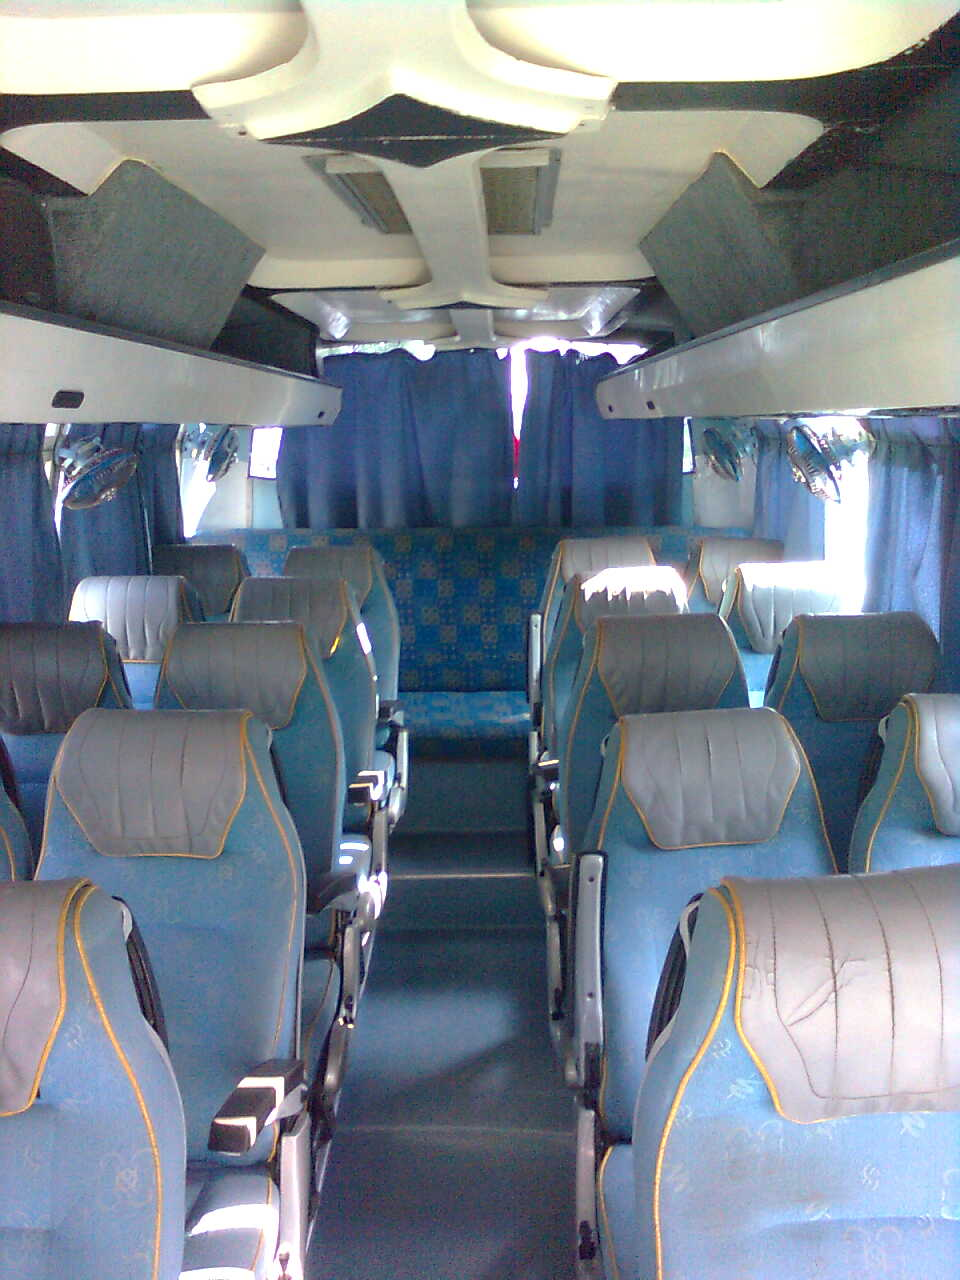 Bus services in Gaziabad